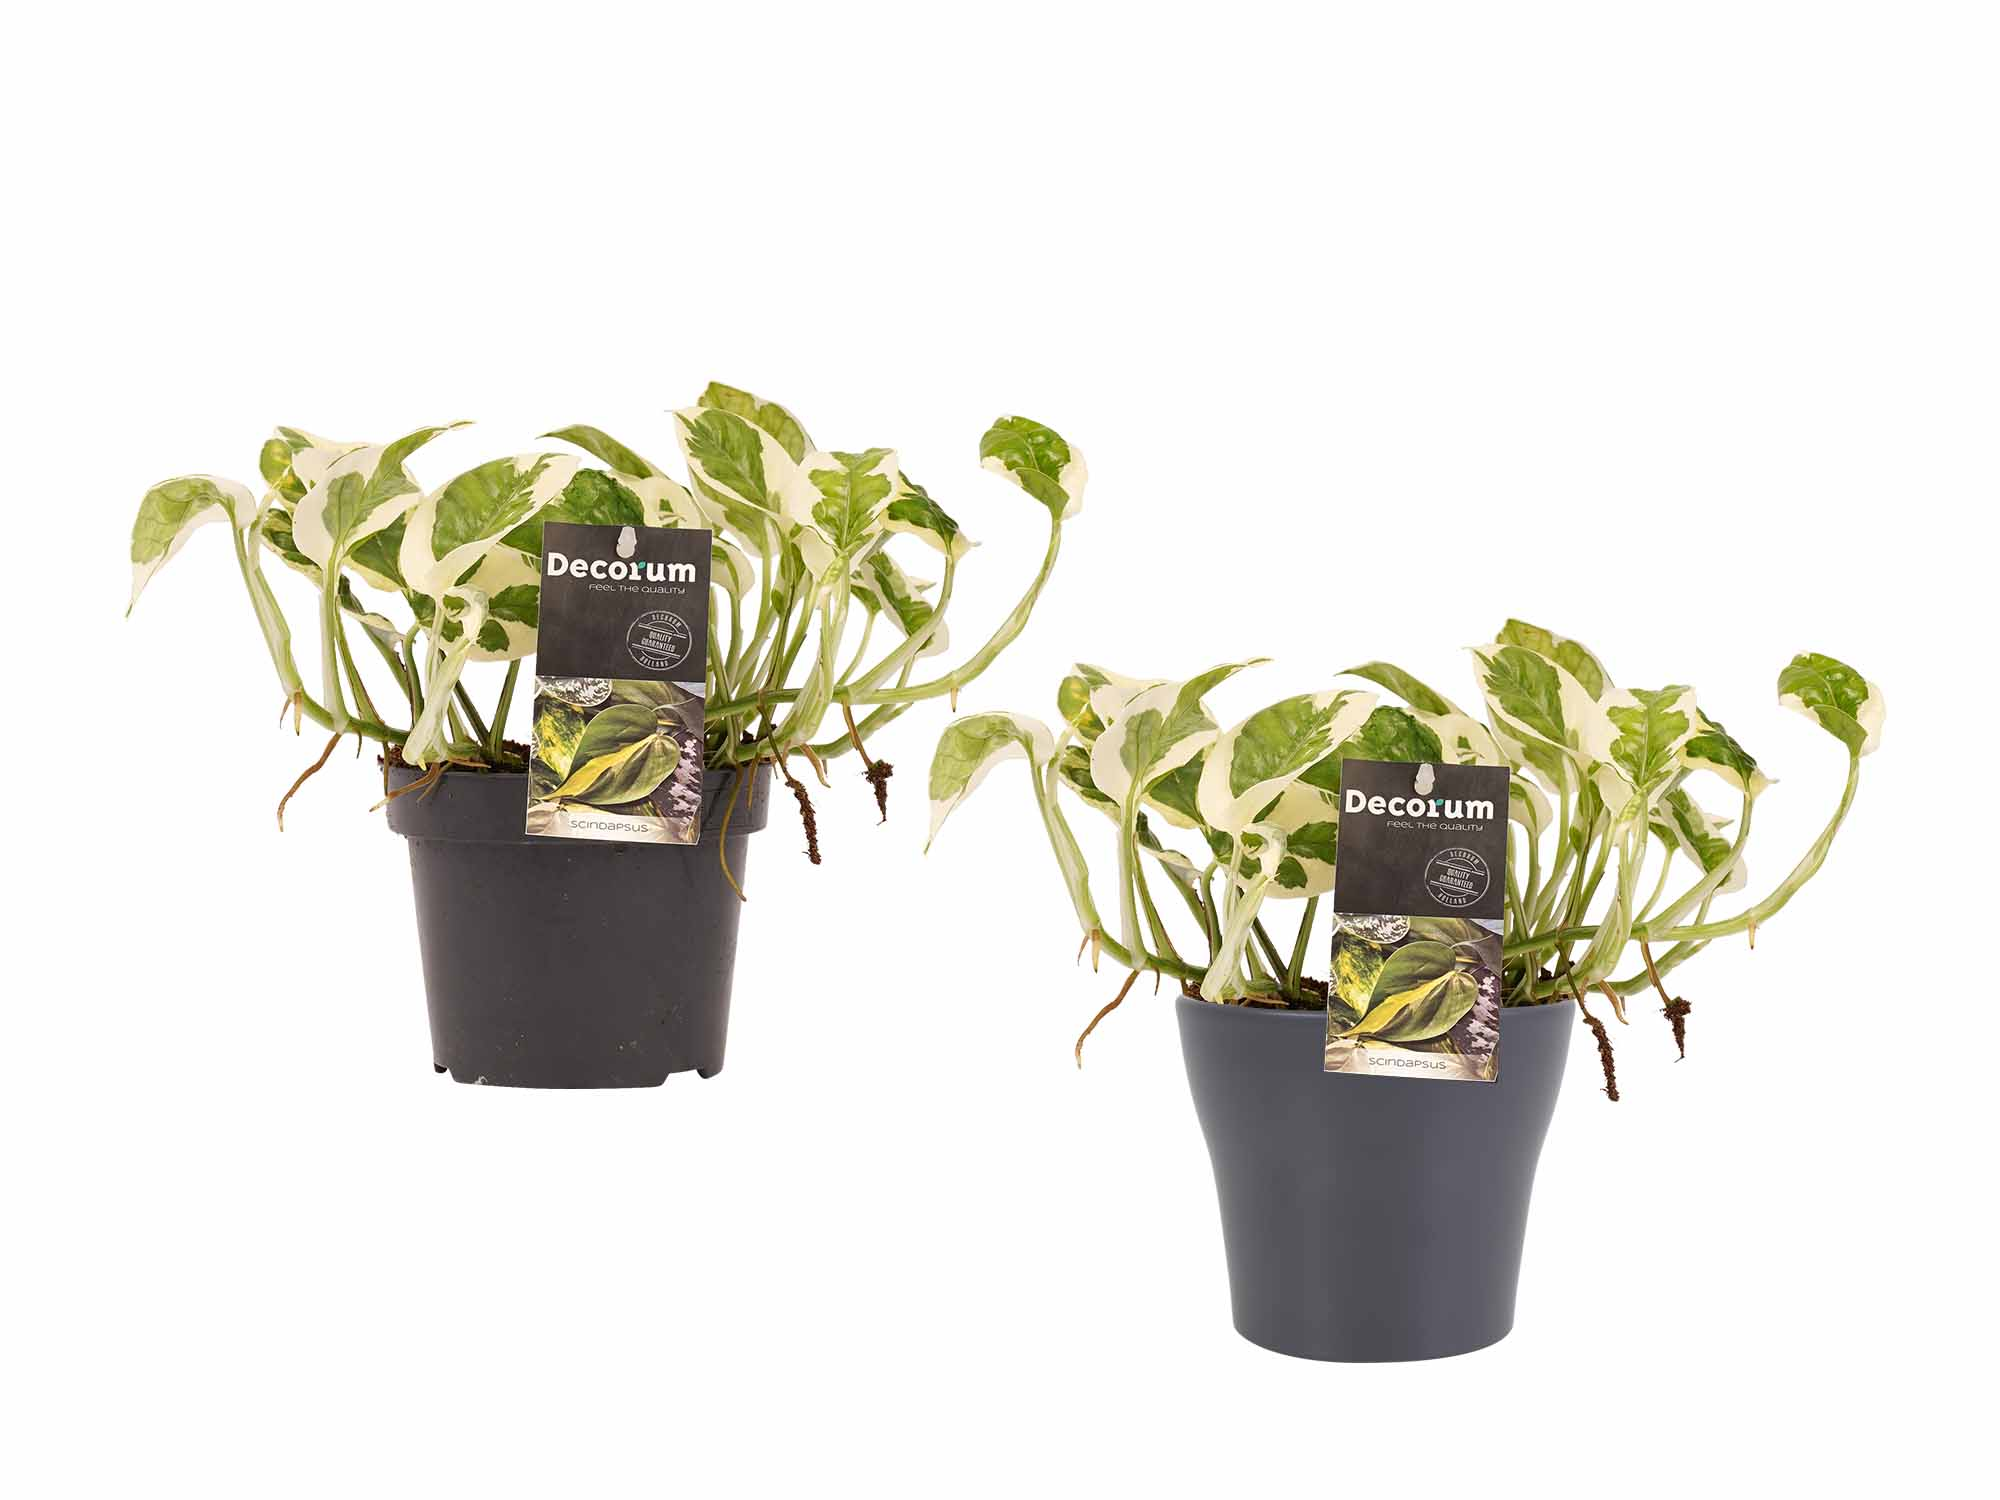 Indoor Plants – 2 × Devil's ivy in gray plant pot as a set – Height: 15 cm